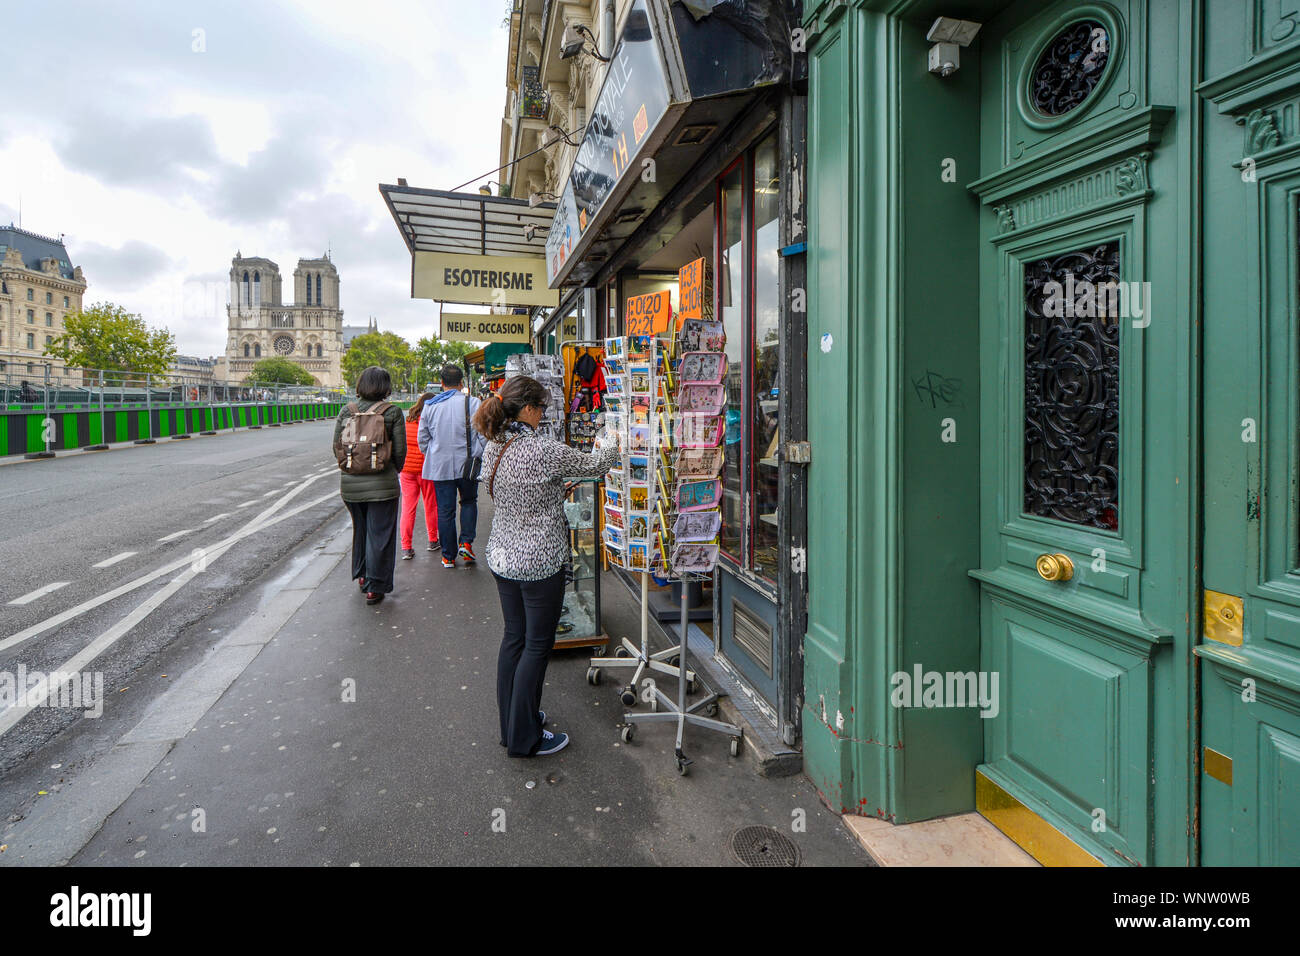 A tourist searches for postcards in Paris, France, at a sidewalk souvenir shop on the banks of the Seine River with the Notre Dame Cathedral in view Stock Photo